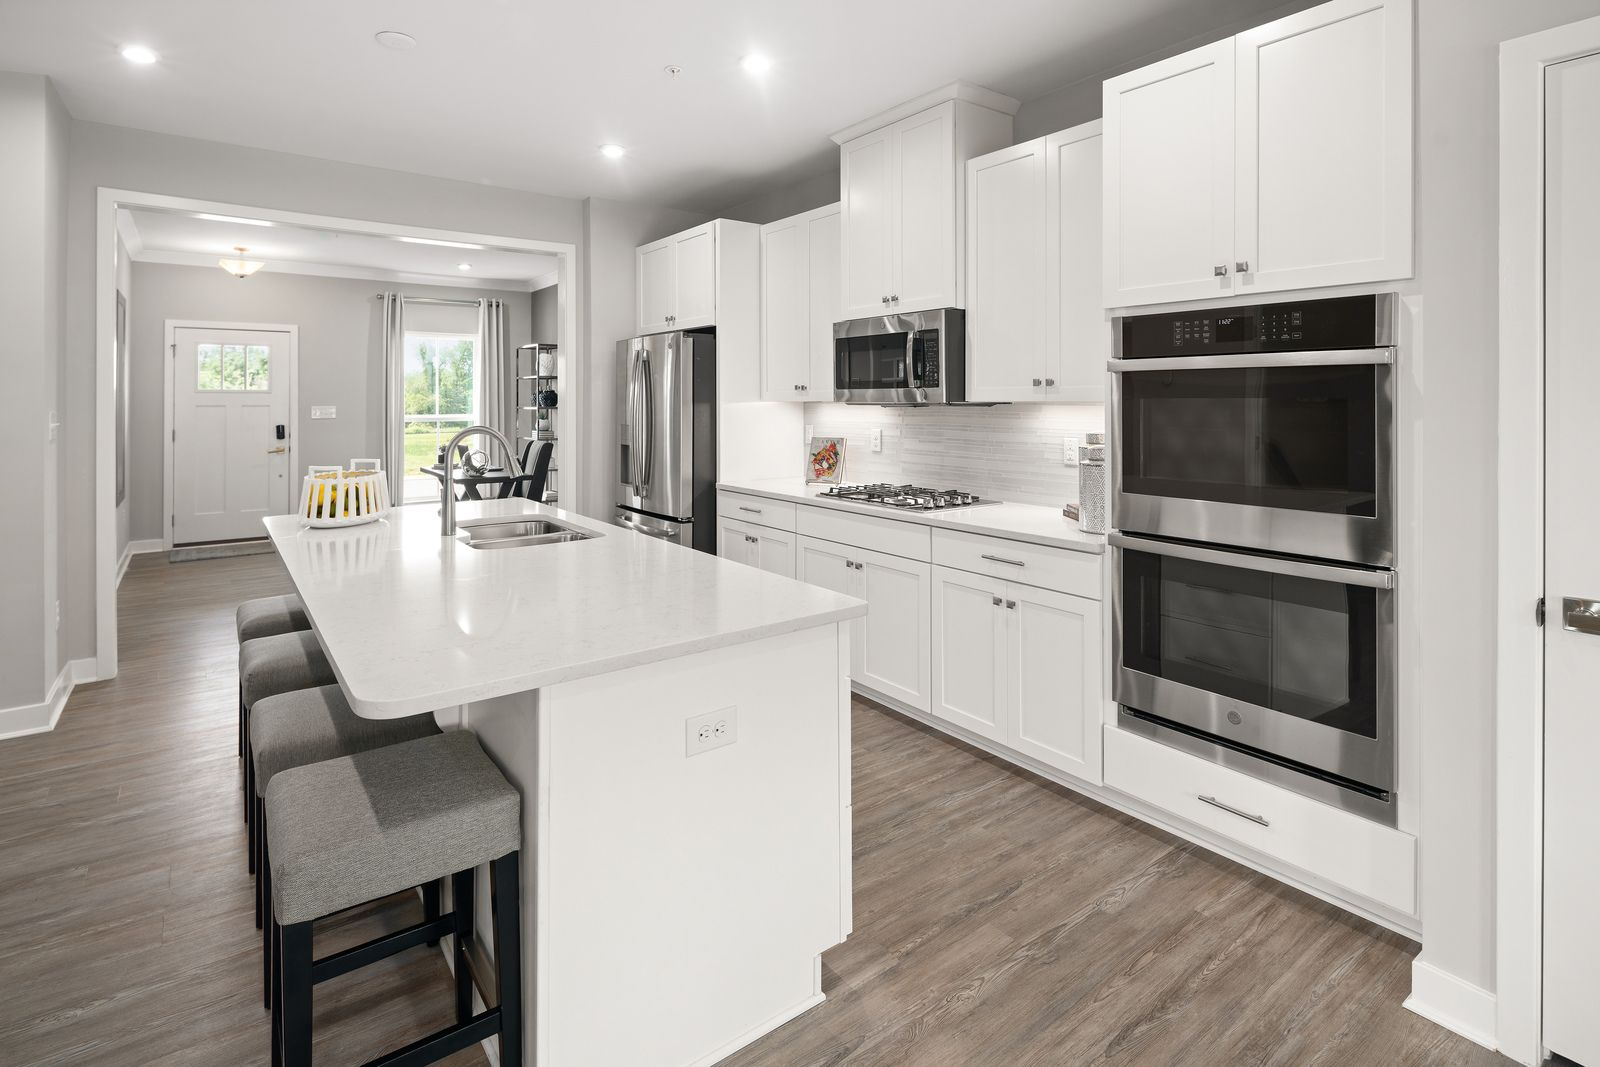 Kitchen featured in the Waldorf By Ryan Homes in Philadelphia, PA